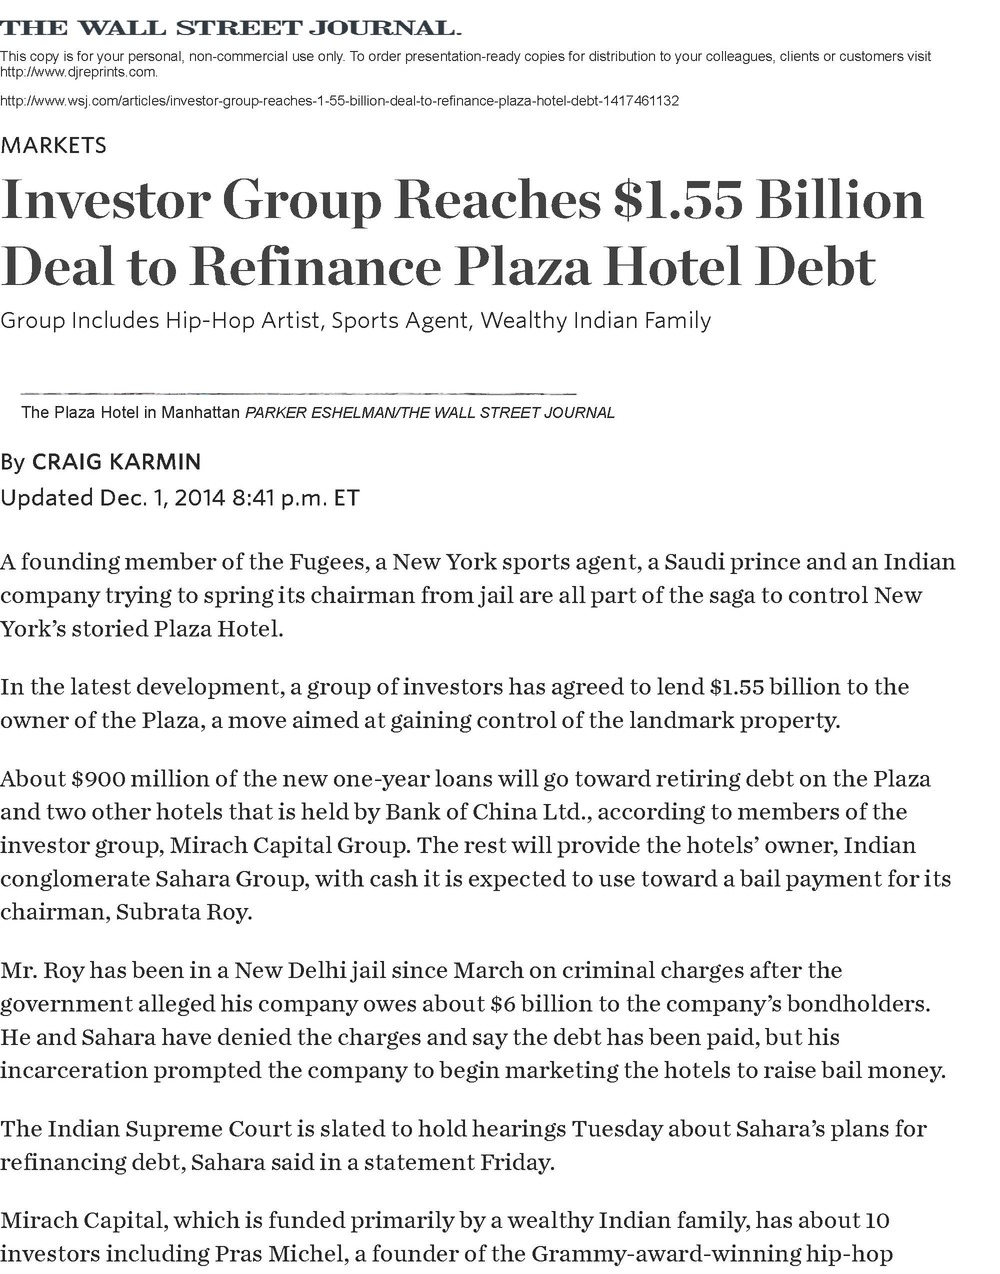 Pages+from+Investor+Group+Reacfinance+Plaza+Hotel+Debt+-+WSJ+1.jpg